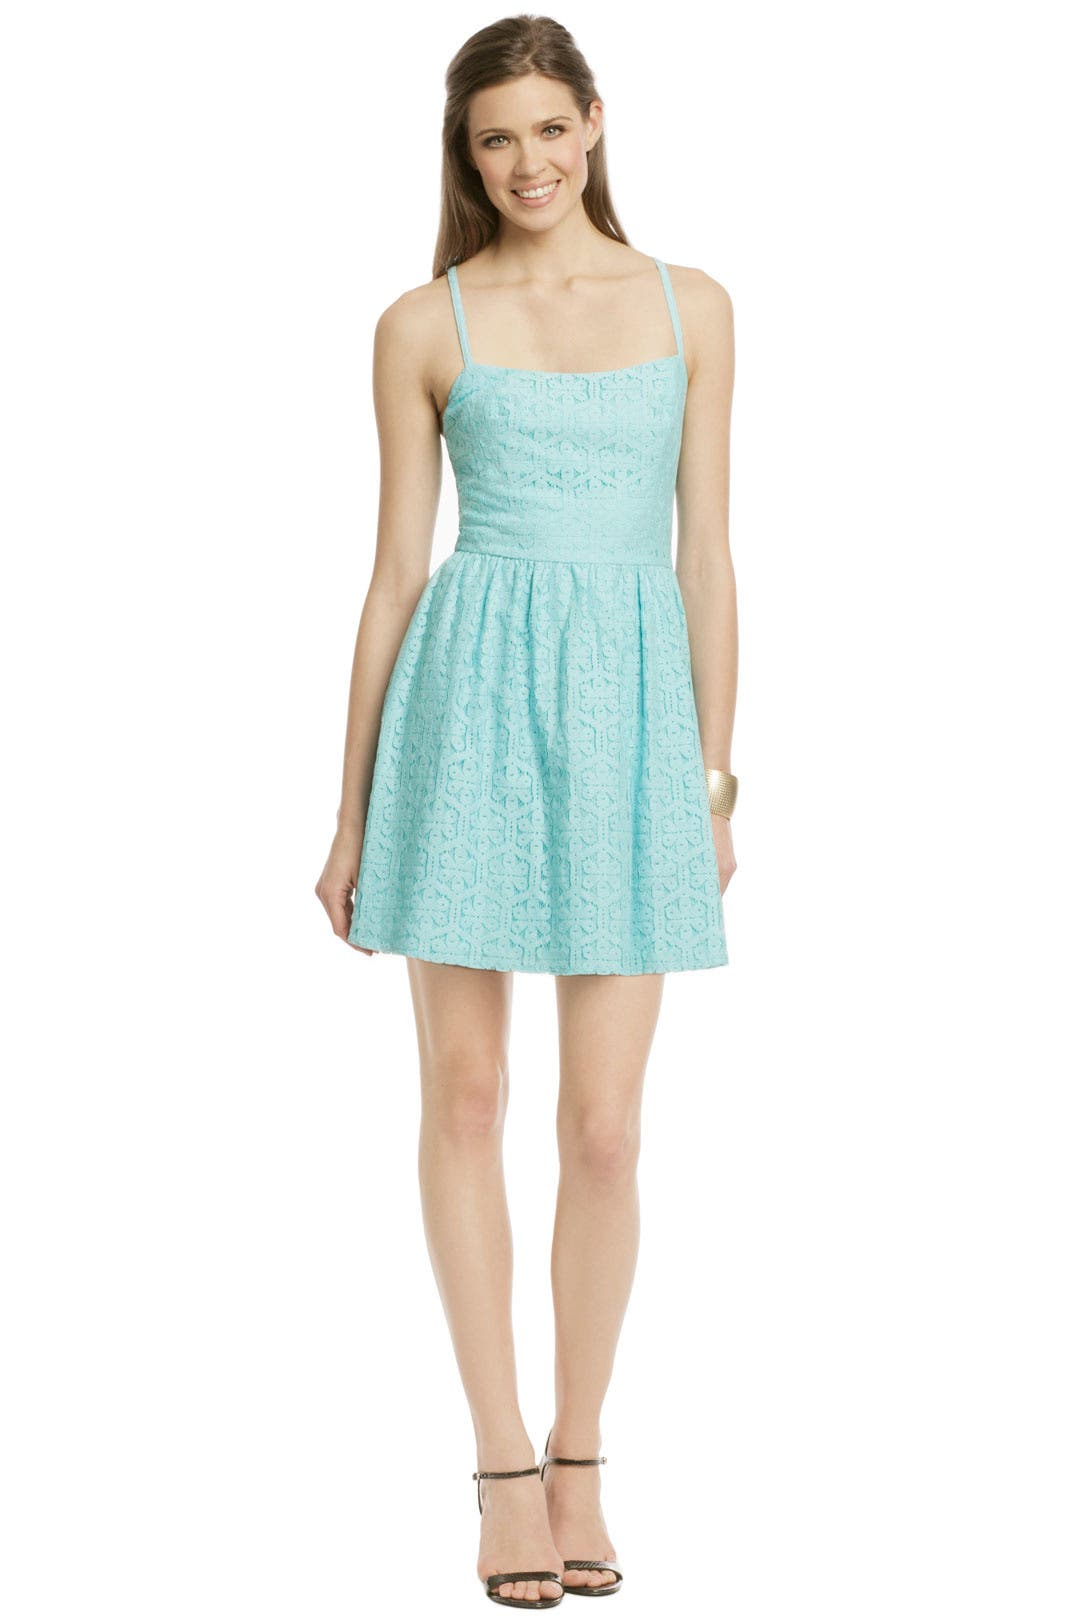 Elisse Dress by Lilly Pulitzer for $42 | Rent the Runway